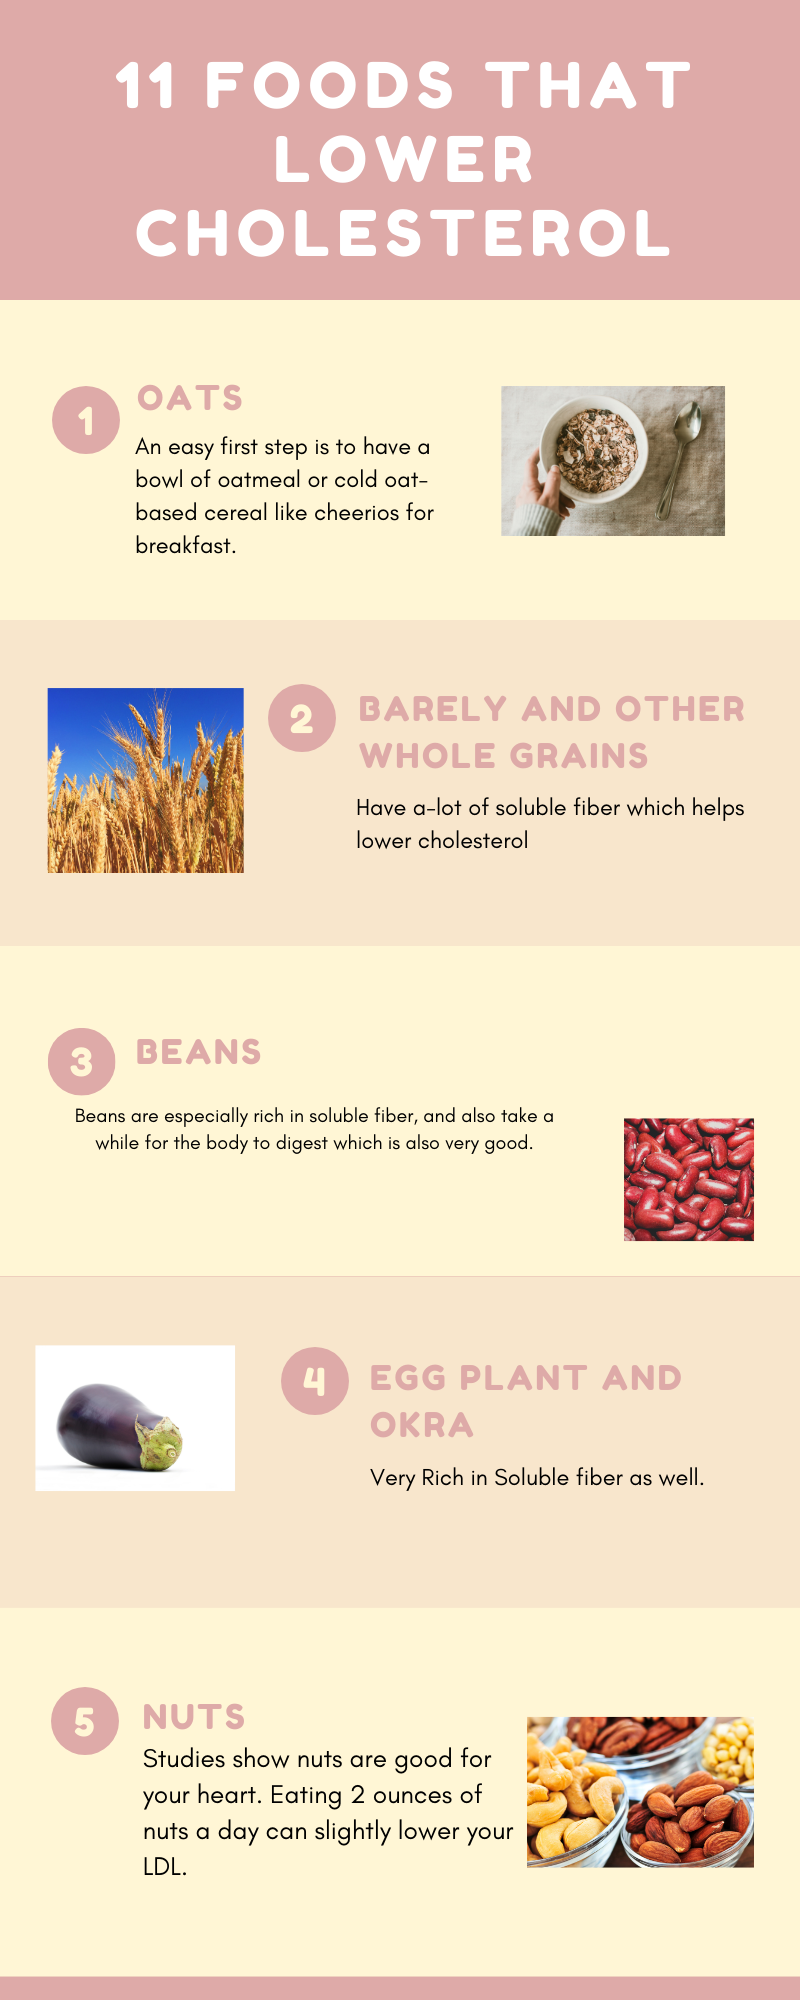 Infographic on 11 Foods that lower cholesterol